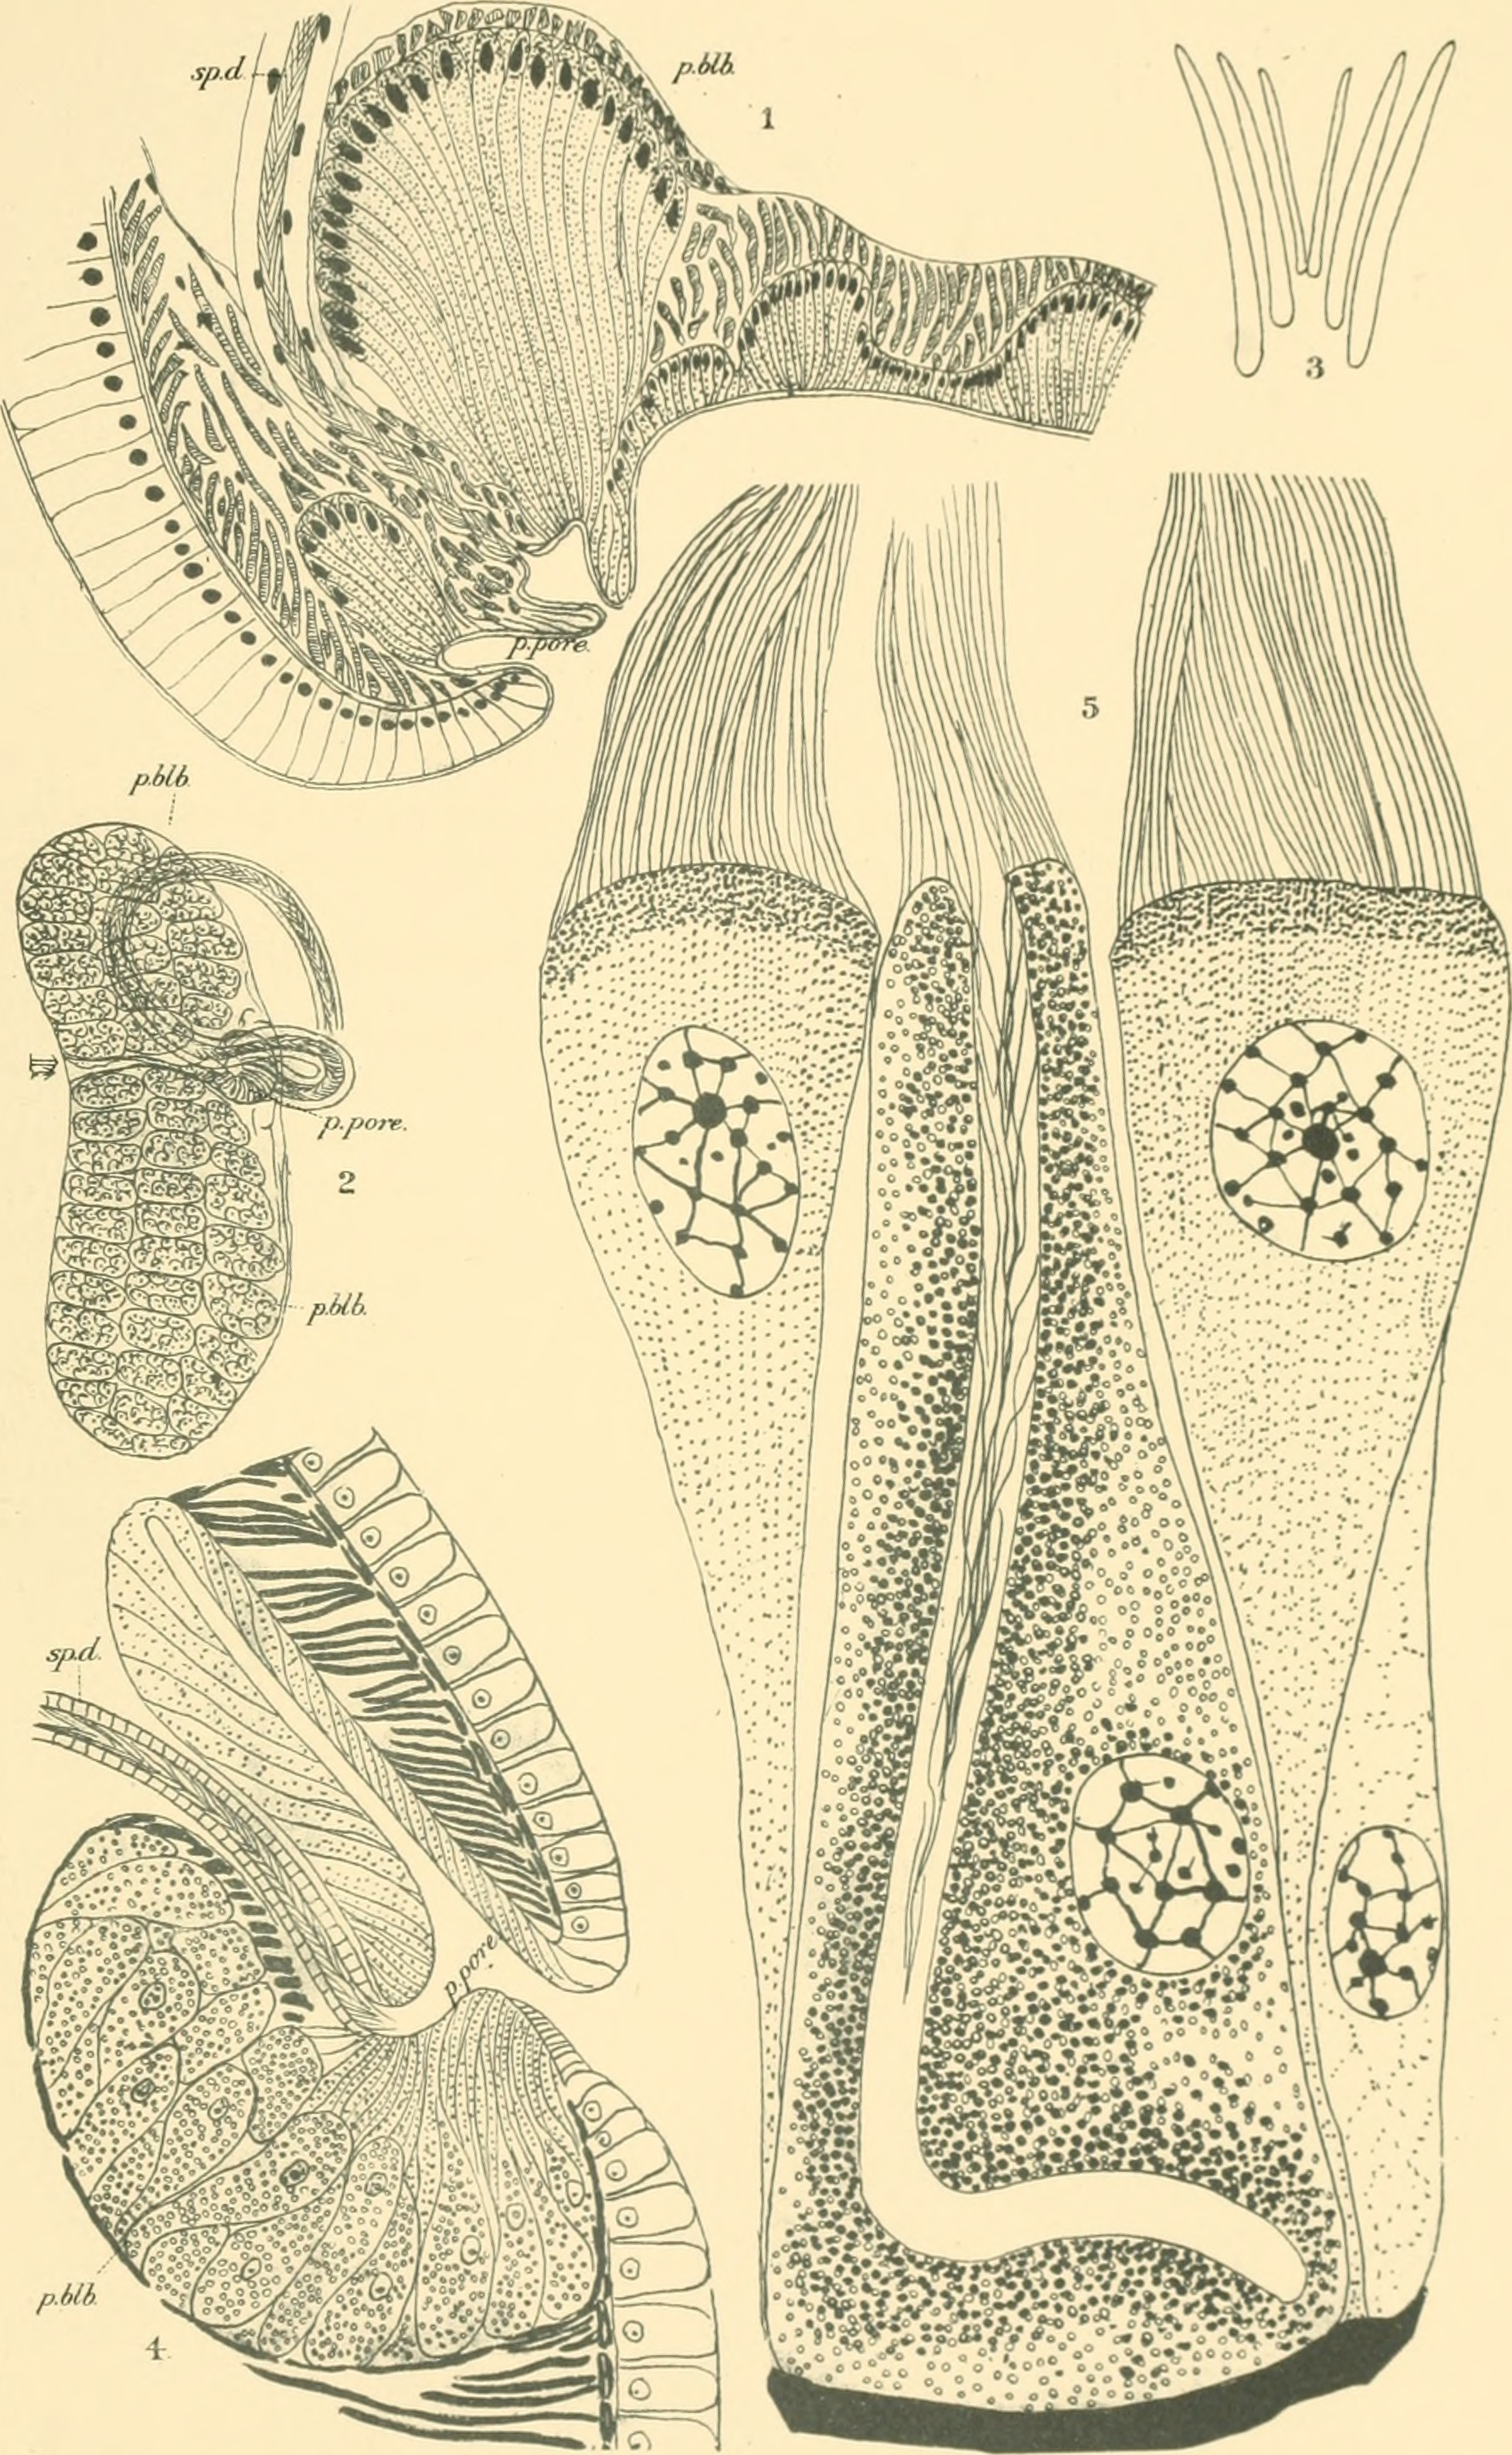 Image of pot-worms